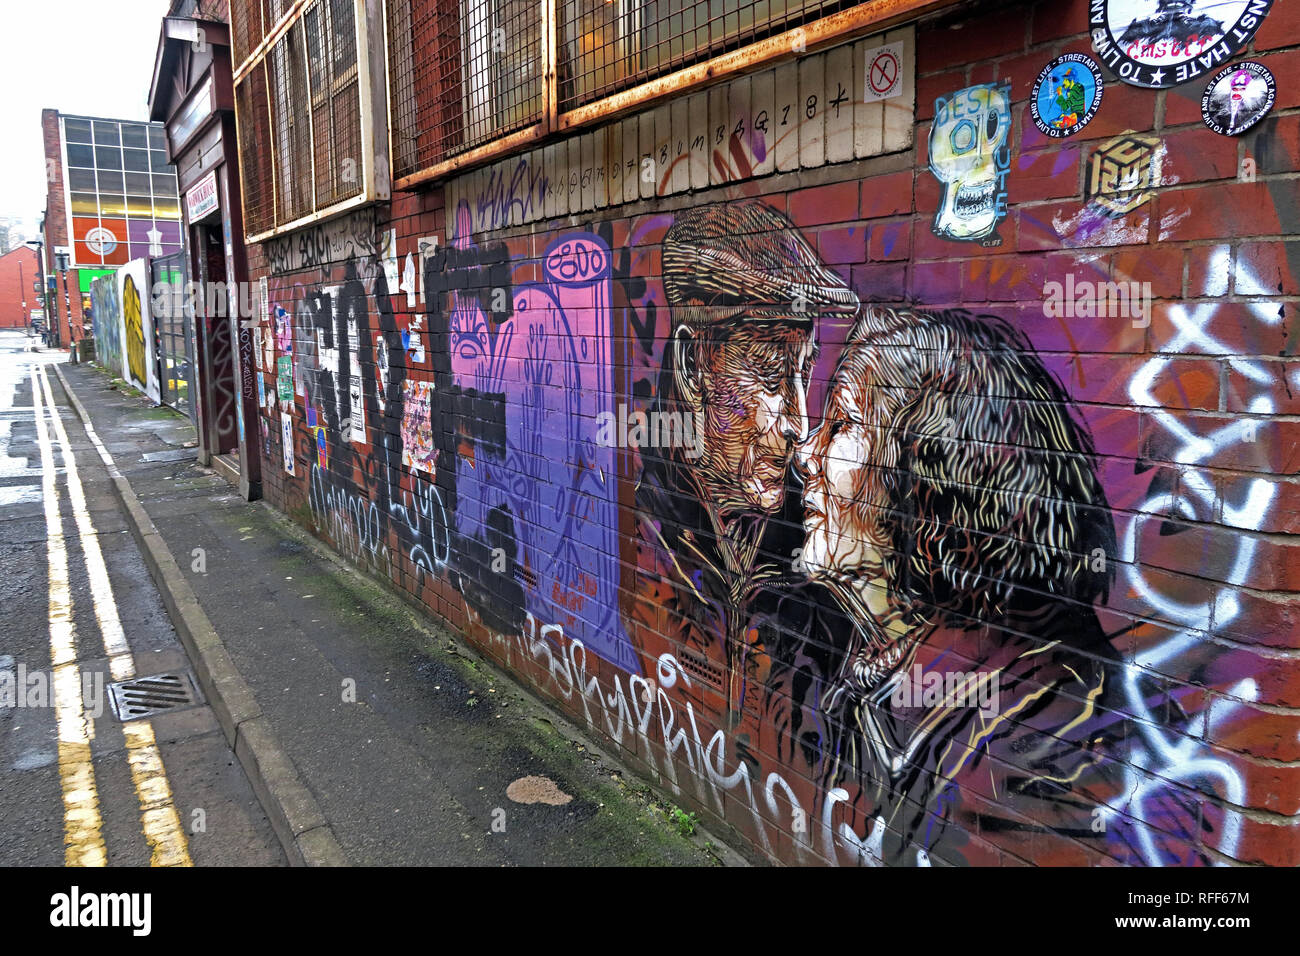 Two old people kissing, art work, Newton St, Northern Quarter, Manchester, M1, England, UK Stock Photo